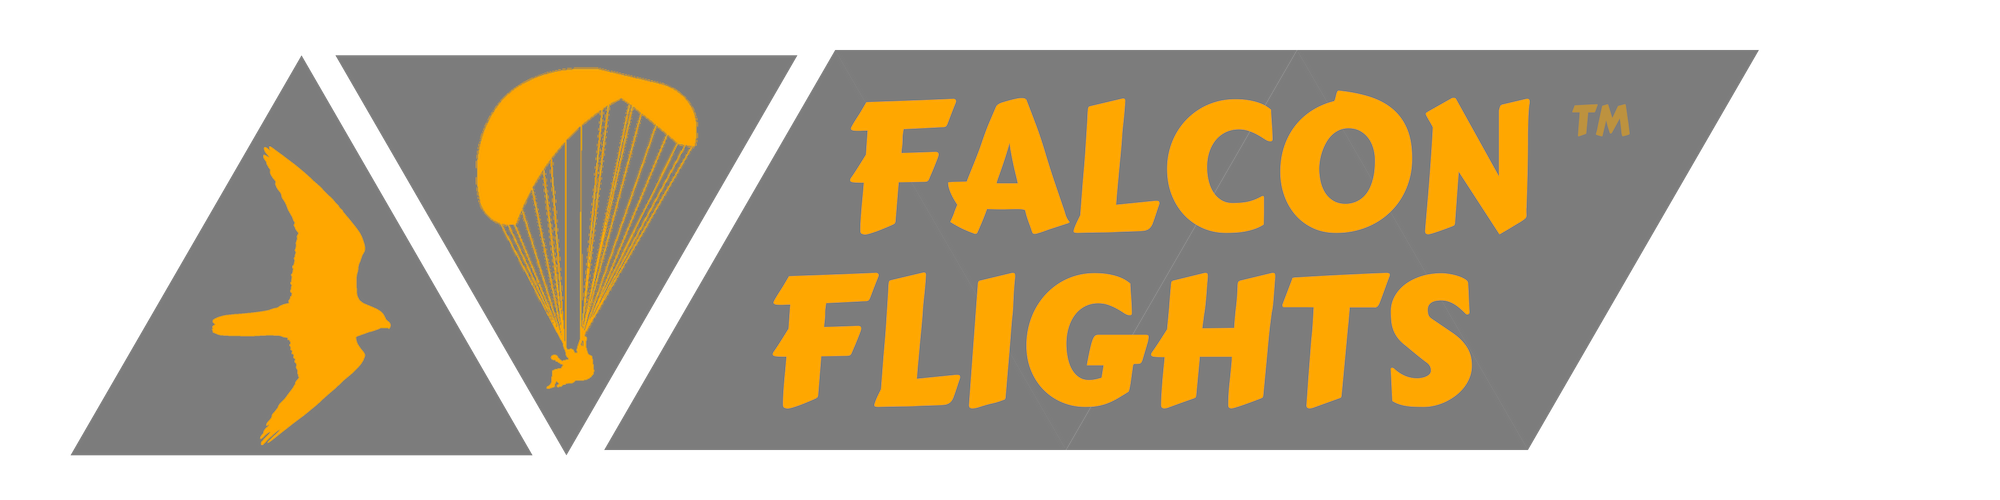 falcon flights logo